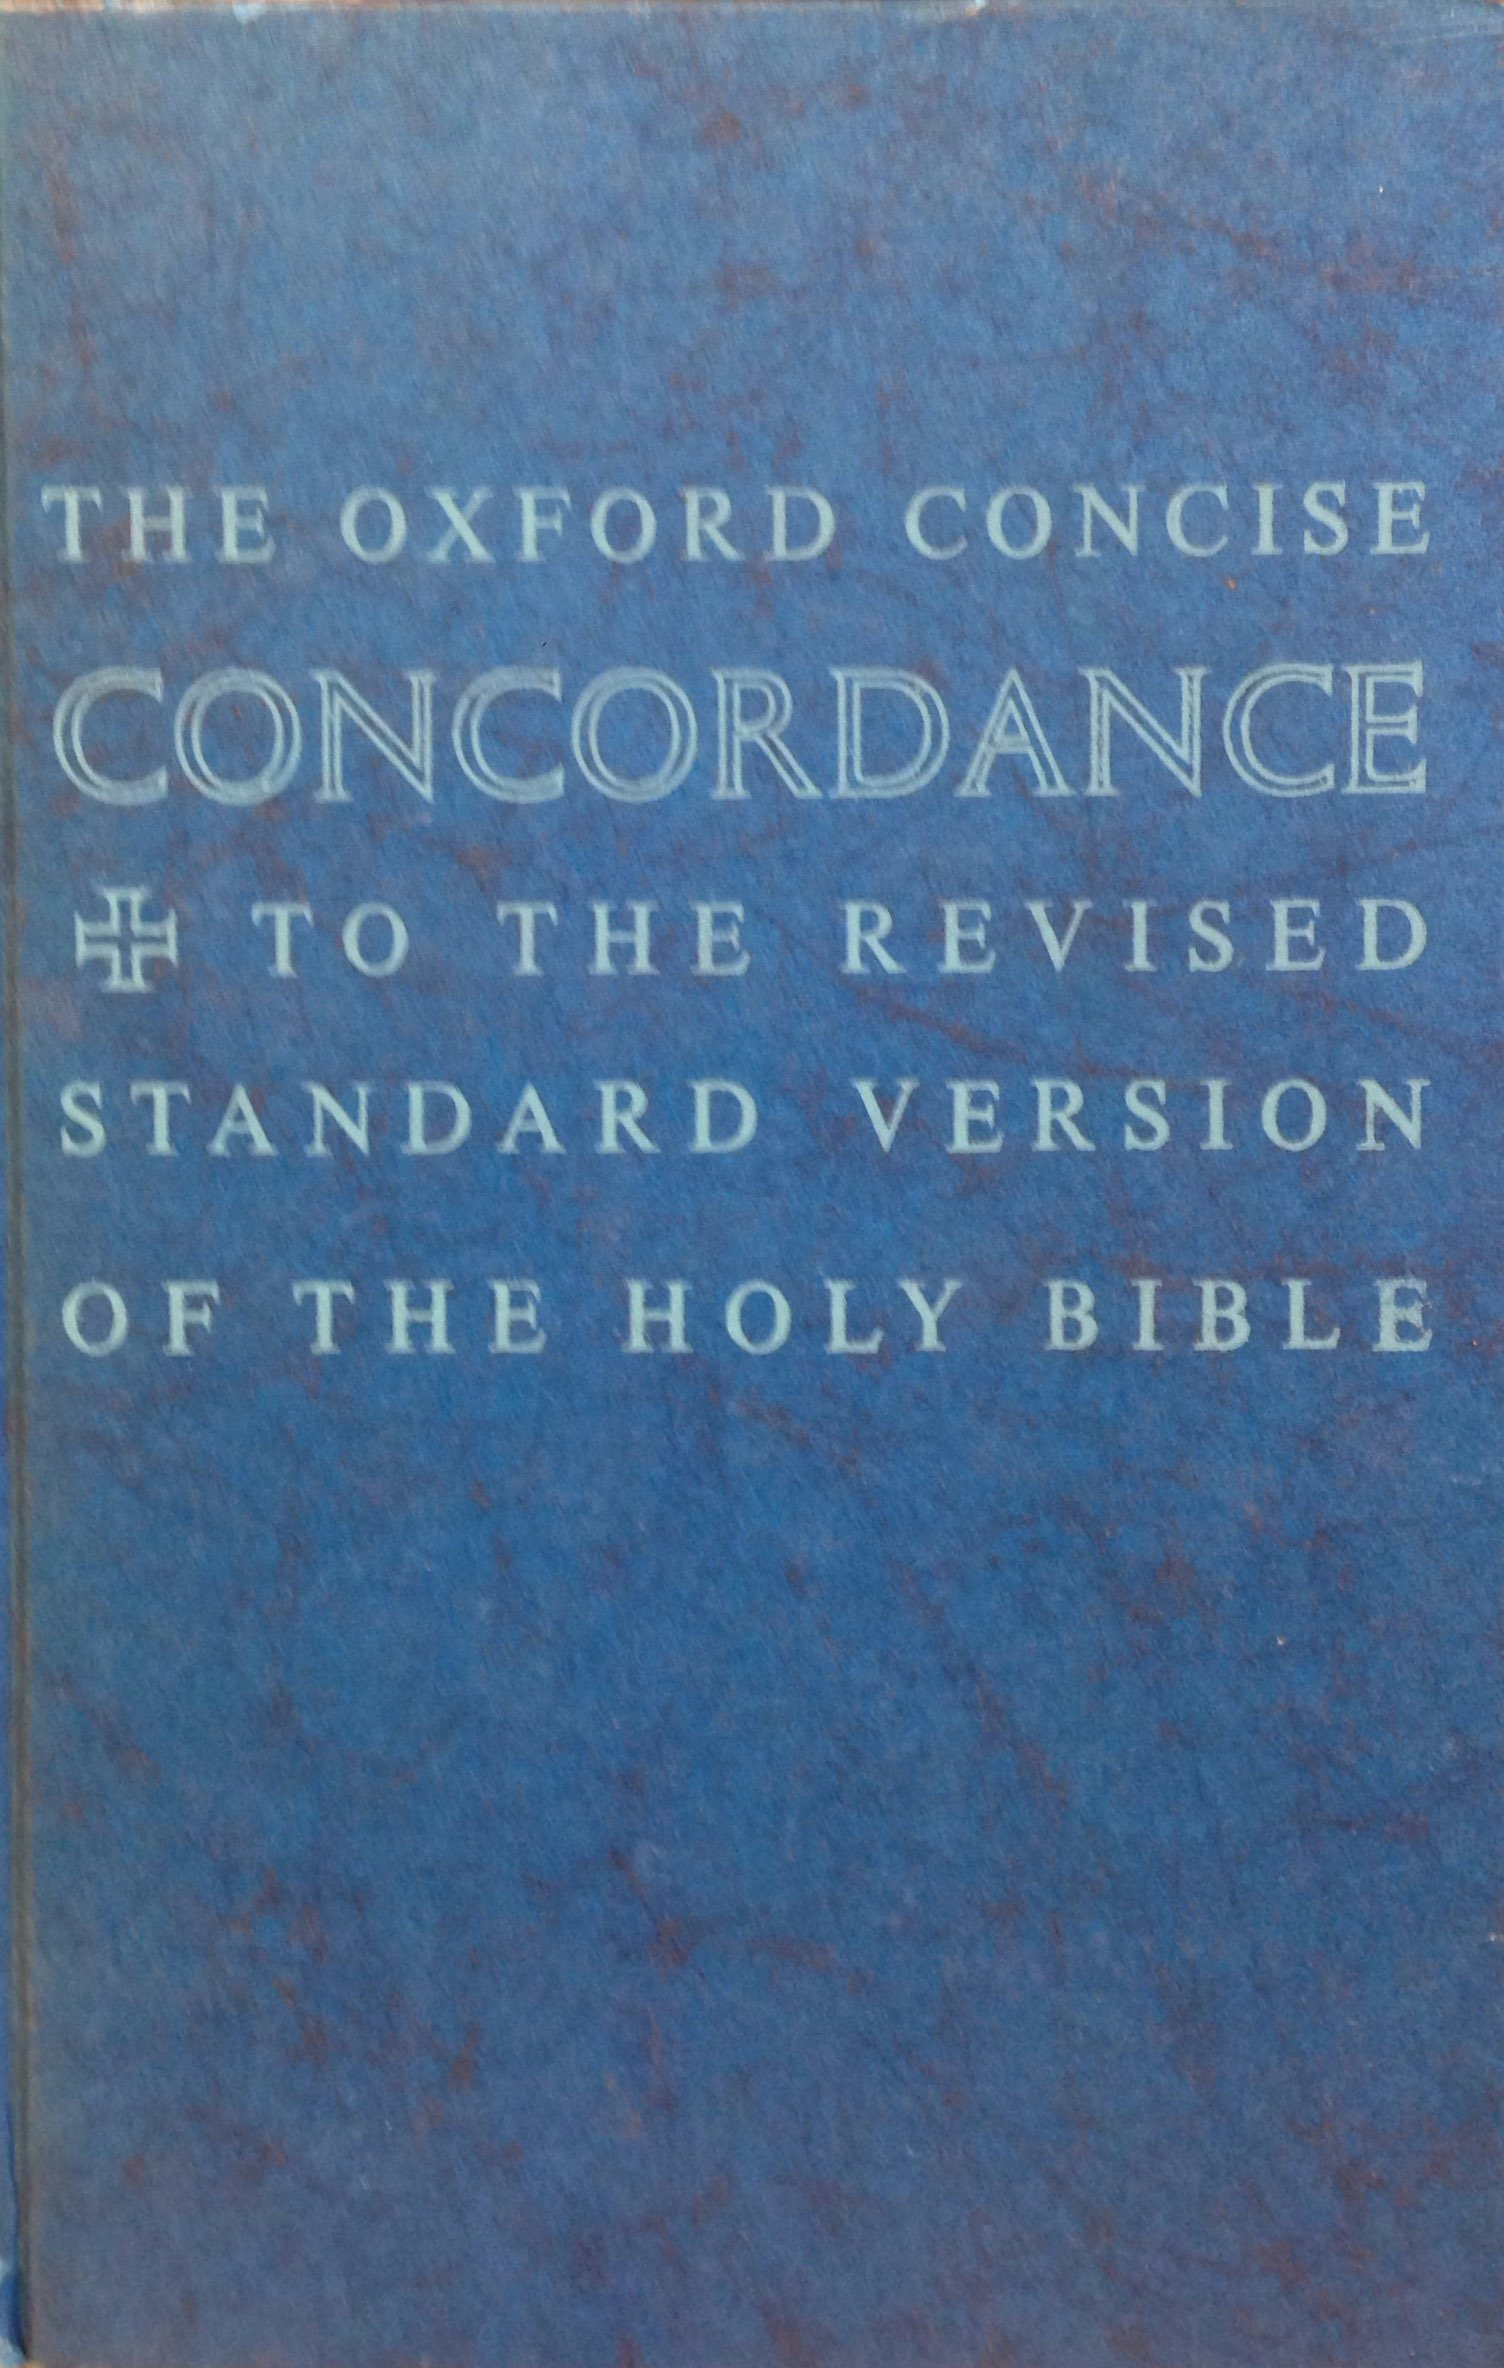 Oxford Concise Concordance to the Revised Standard Version of the Holy Bible / Compiled by Bruce M. Metzger and Isobel Metzger, Metzger, Bruce Manning. Metzger, Isobel (Eds. )